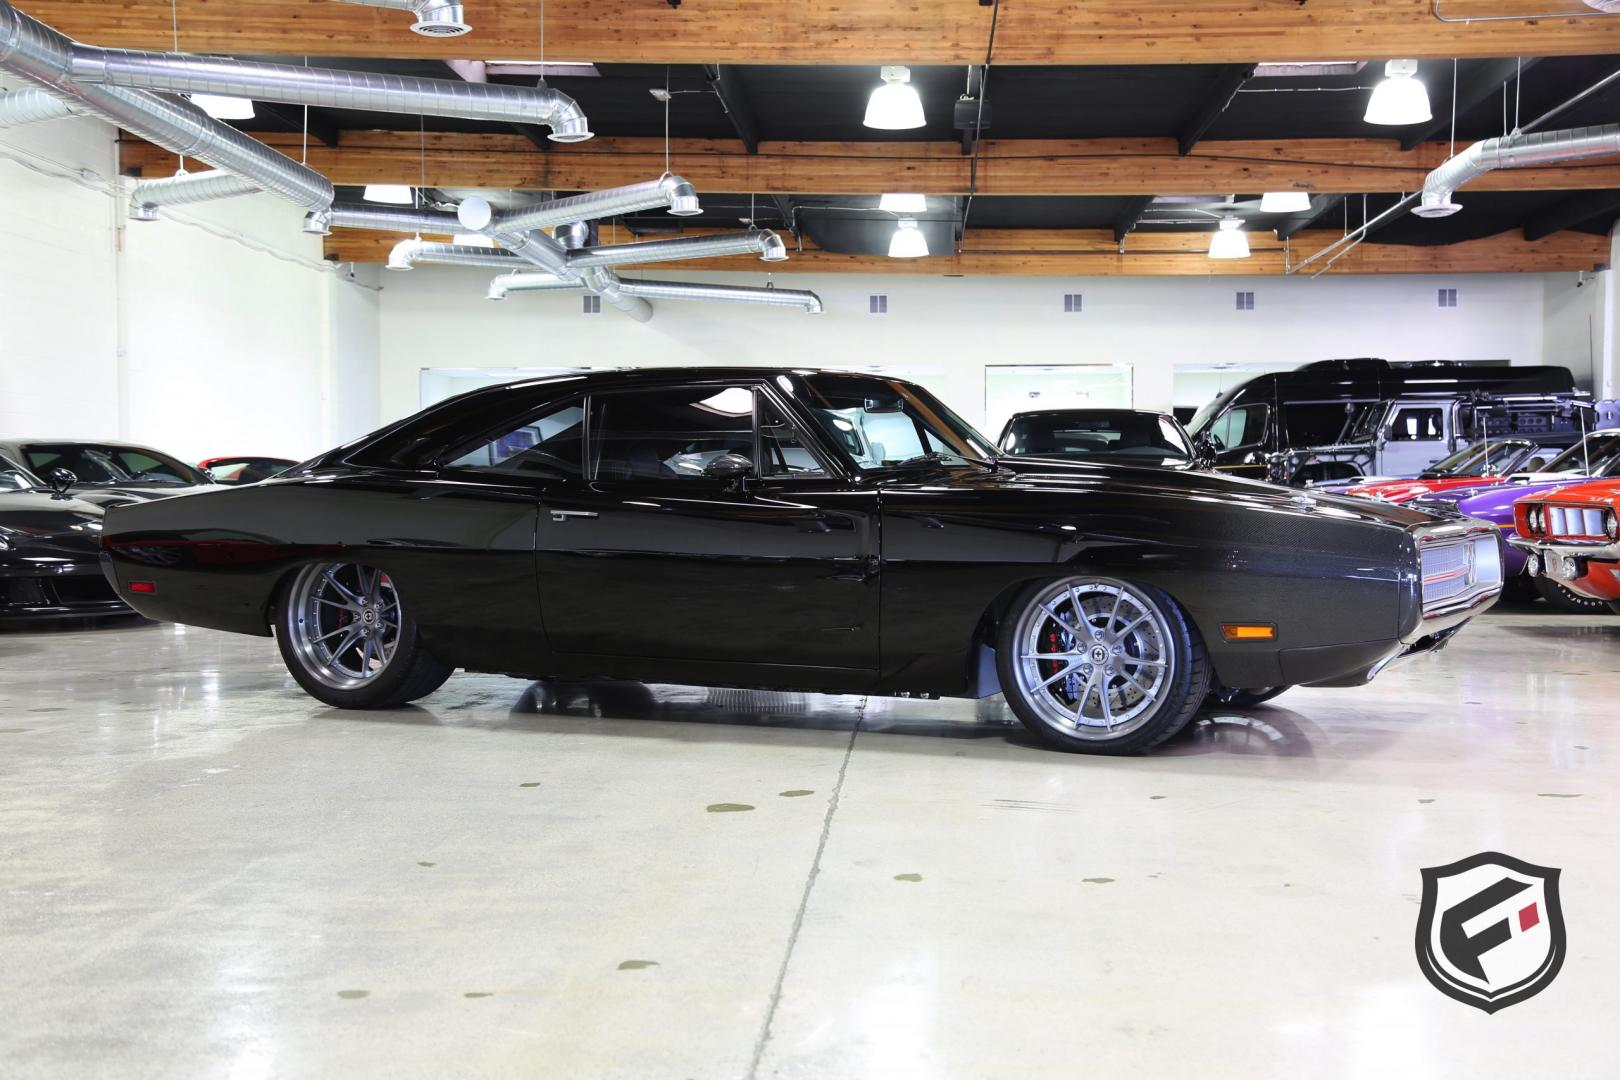 Dodge Charger 'Tantrum' fate of the furious